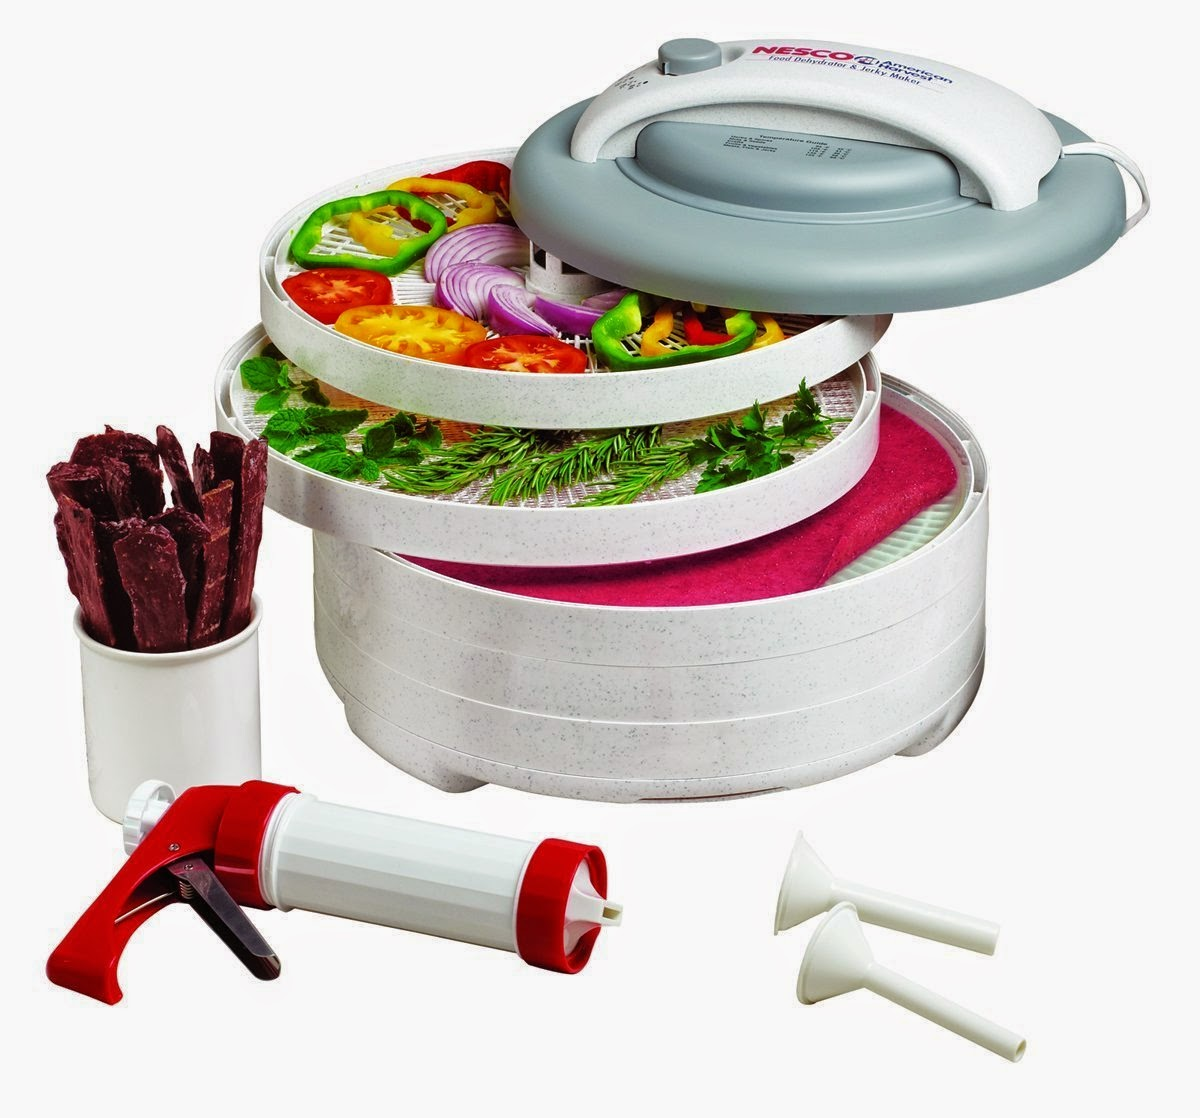 What Can I Make In A Food Dehydrator